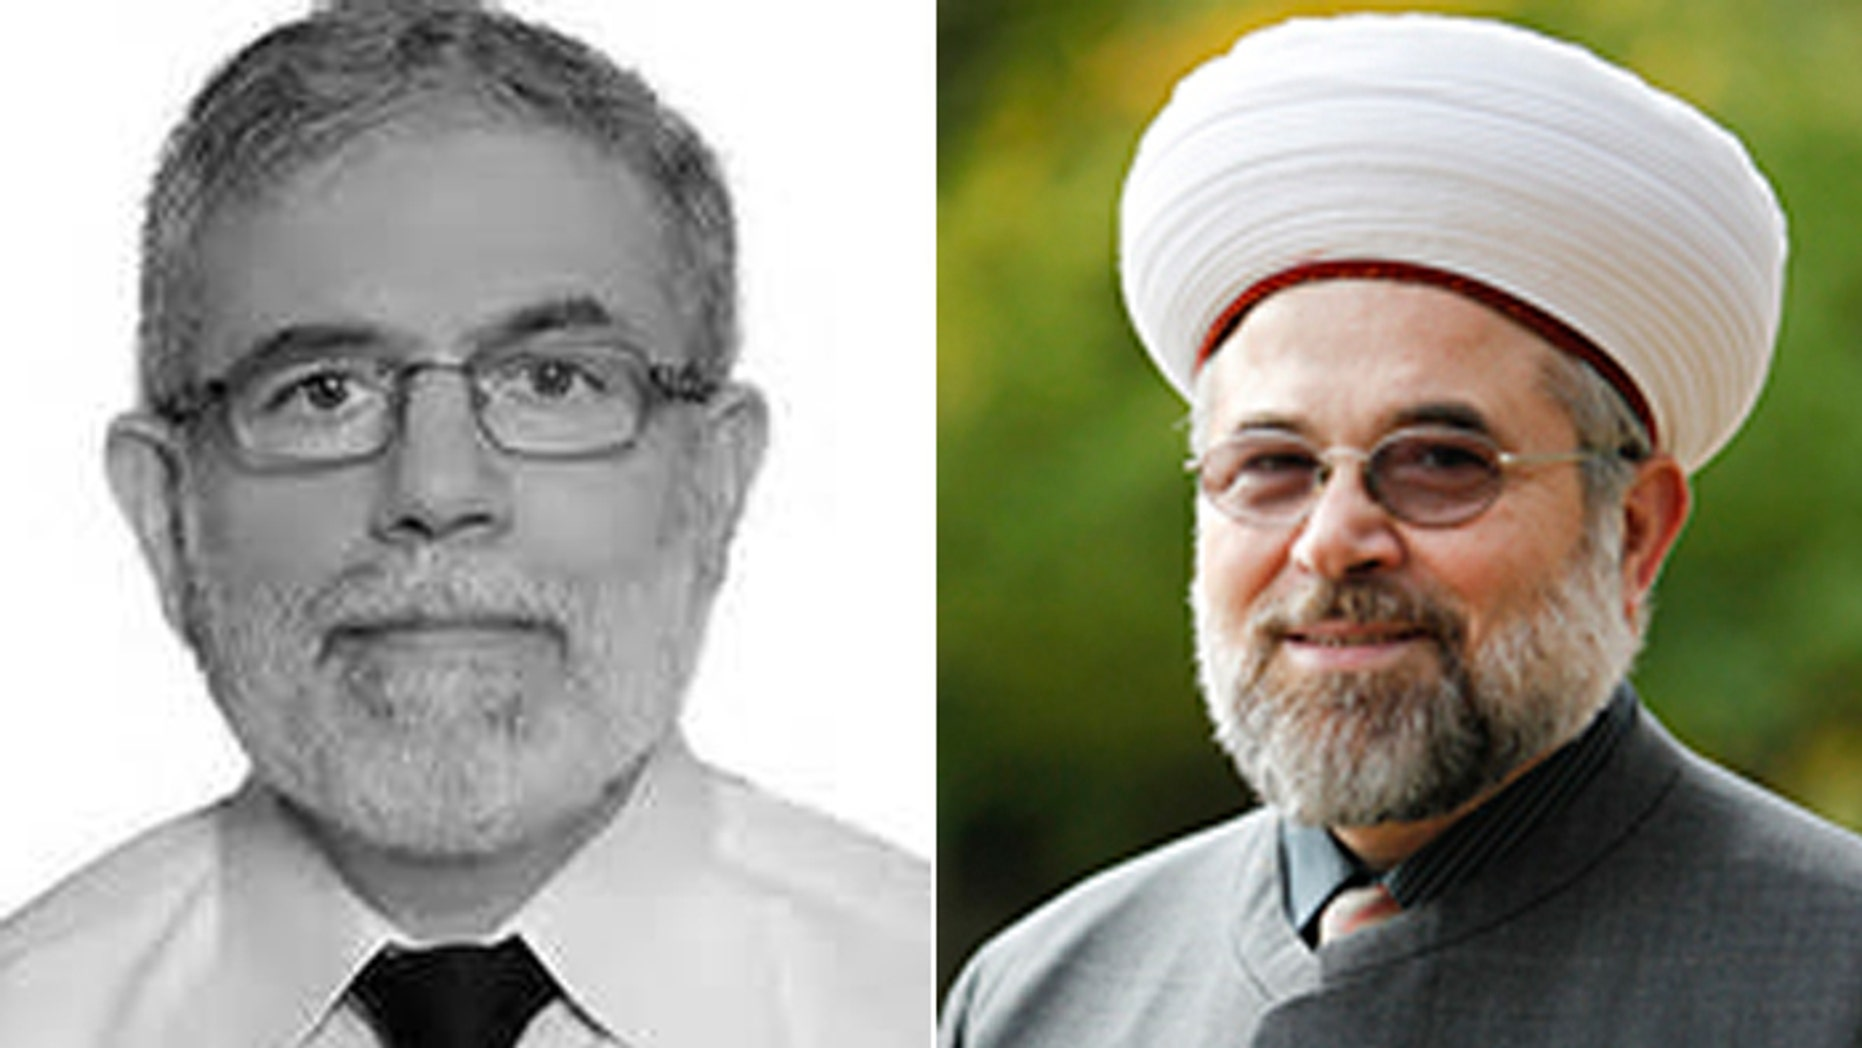 Abousamra, (l.), wanted Imam Talal Eid, (r.), replaced by a more radical preacher, according to Eid. (Massachusetts General Hospital, Brandeis University)